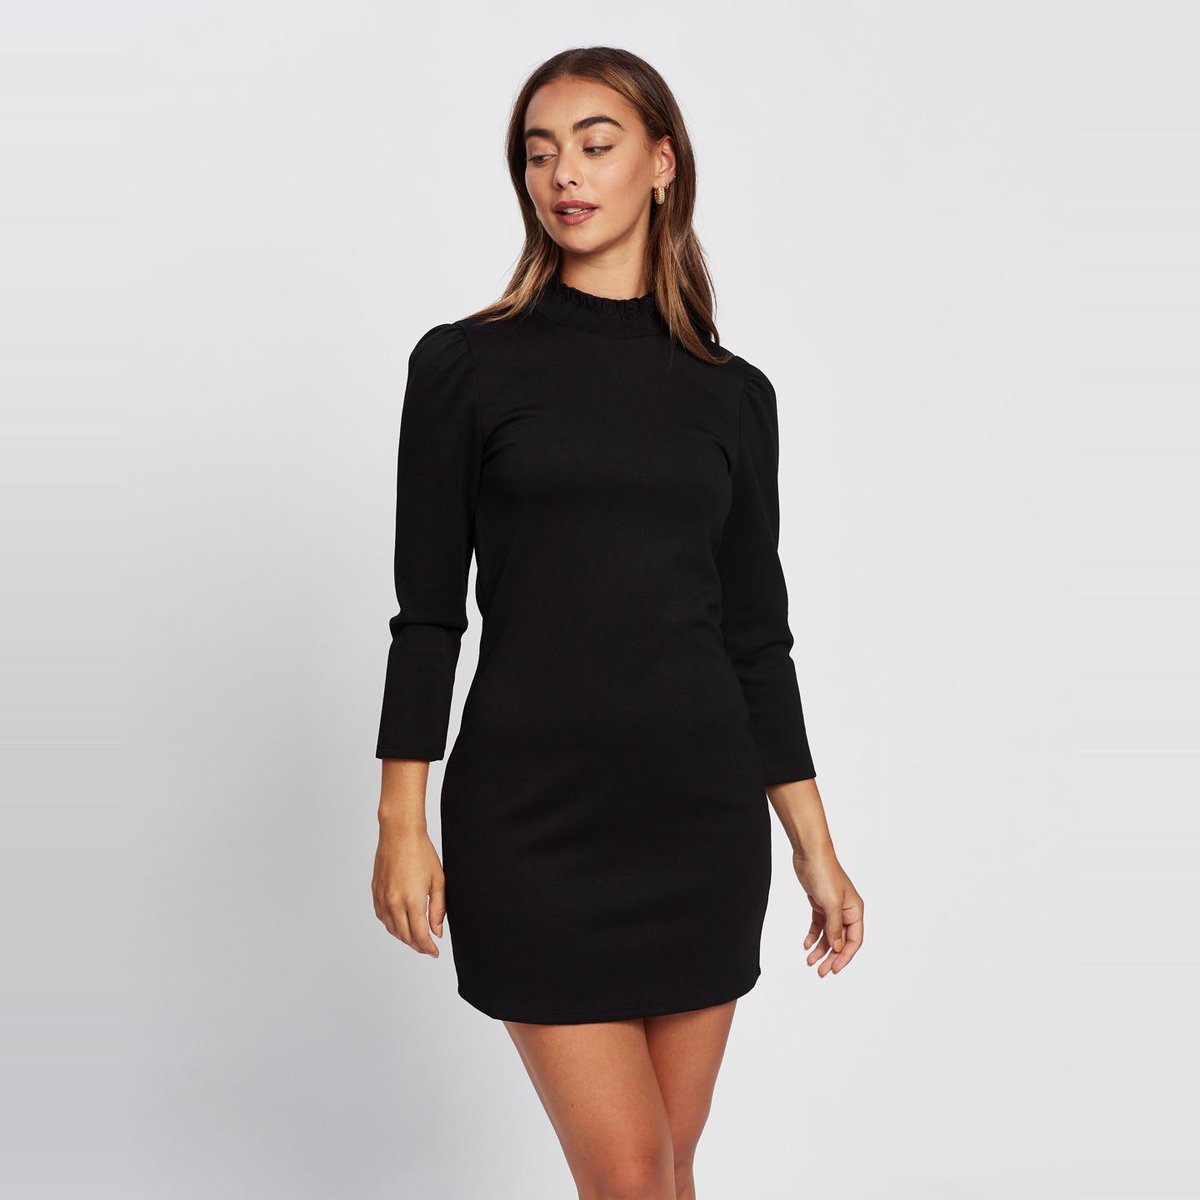 M.N.G - Angeles Dress - $44.95  #mng #dresses